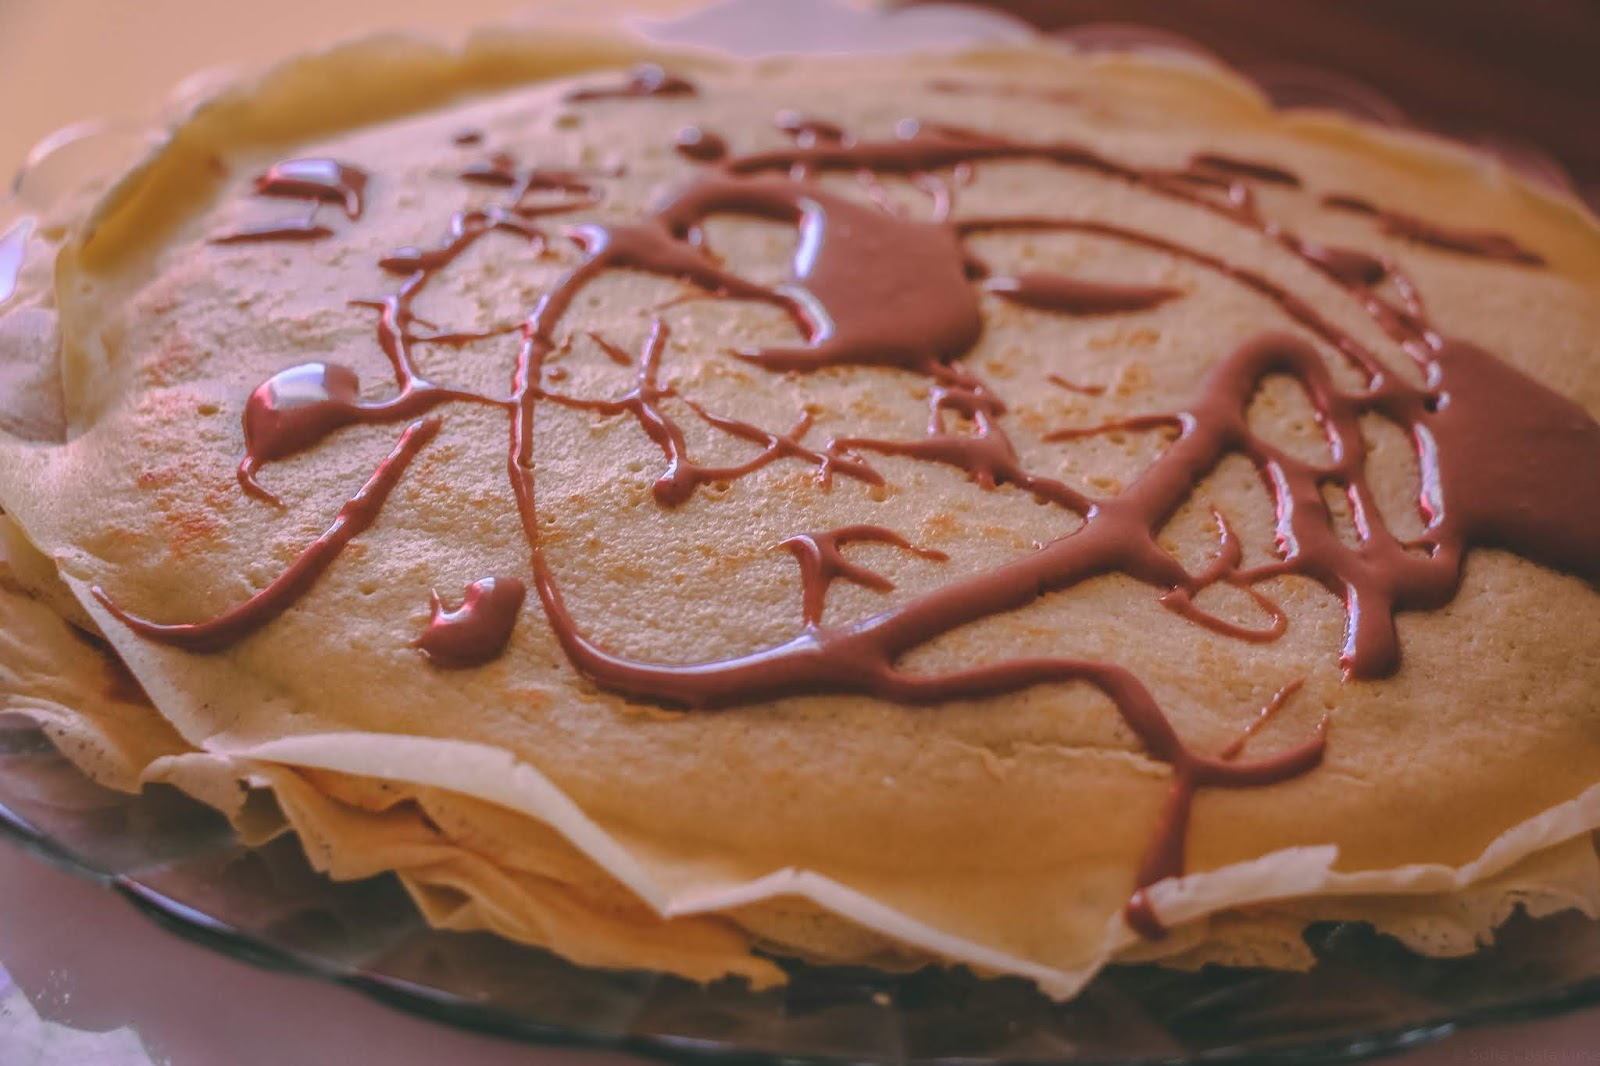 #masterchefcádosítio versão World Nutella Day - Bolo de Crepes com Nutella